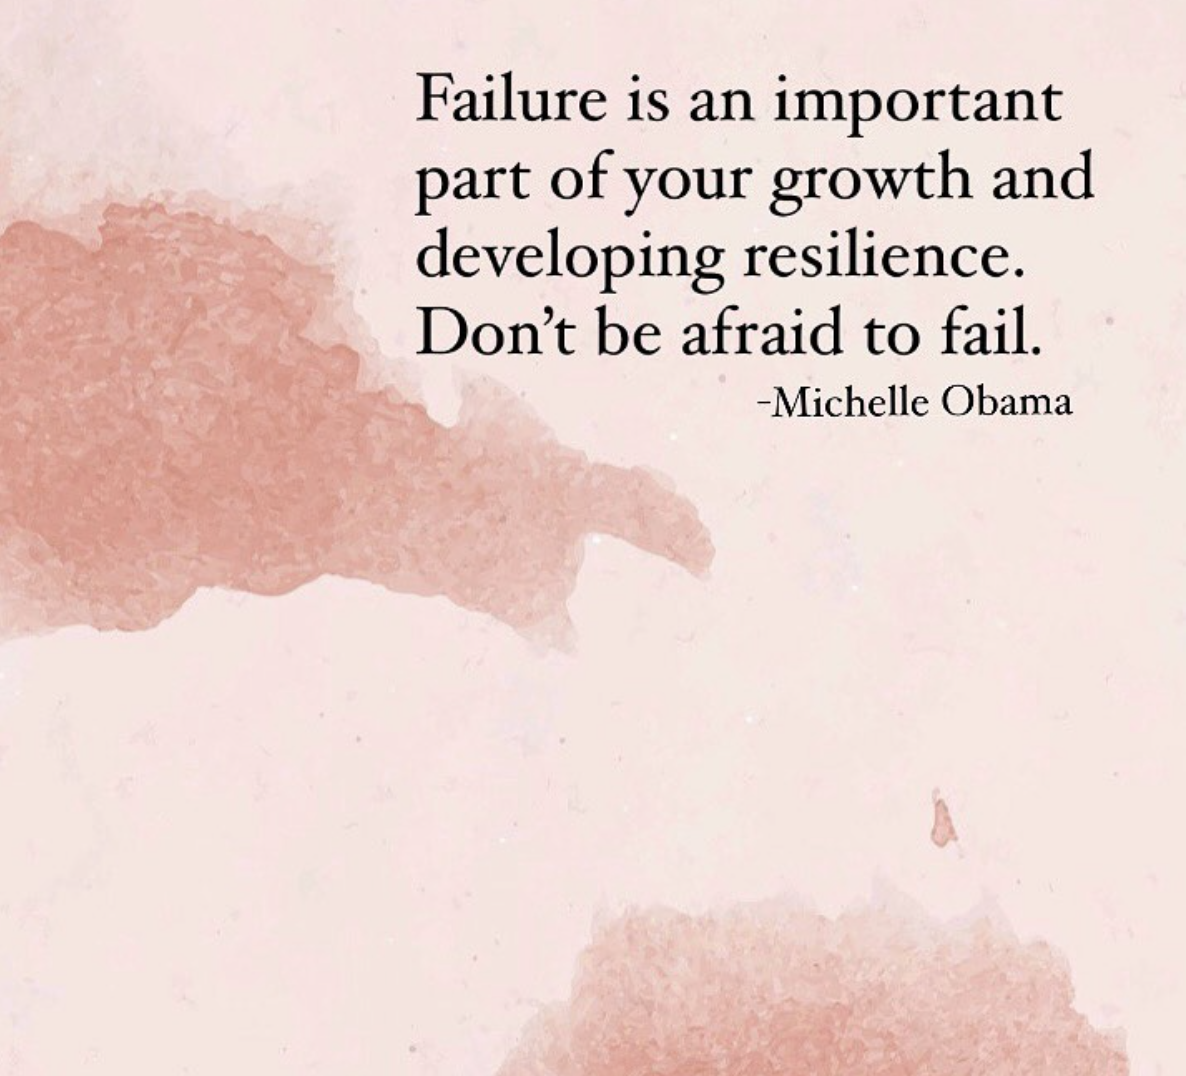 [Image] Failure is an important part of your growth and developing resilience. Don't be afraid to fail.